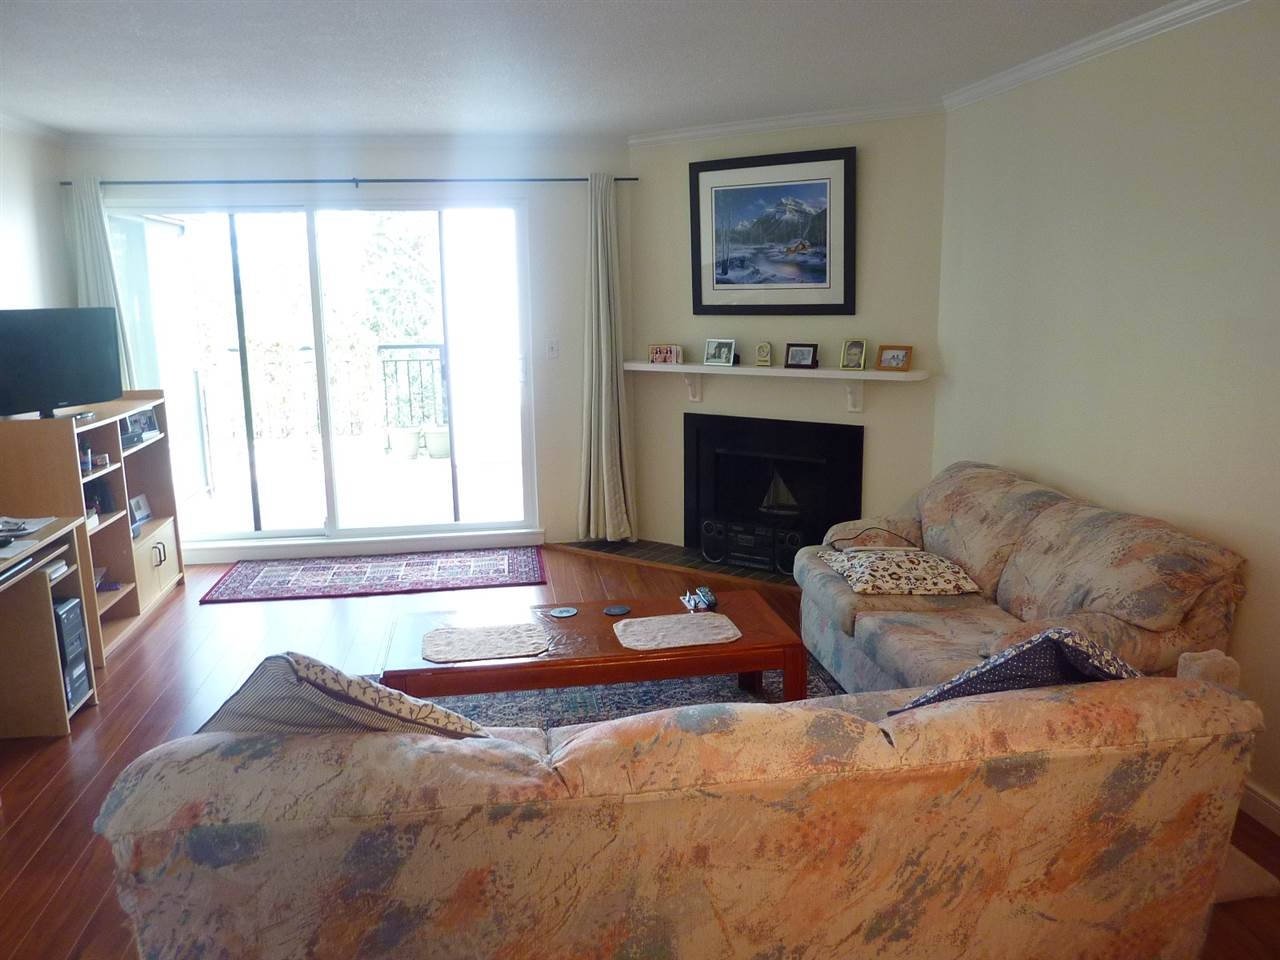 "Photo 10: 304 7851 NO 1 Road in Richmond: Quilchena RI Condo for sale in ""BEACON COVE"" : MLS(r) # R2157084"